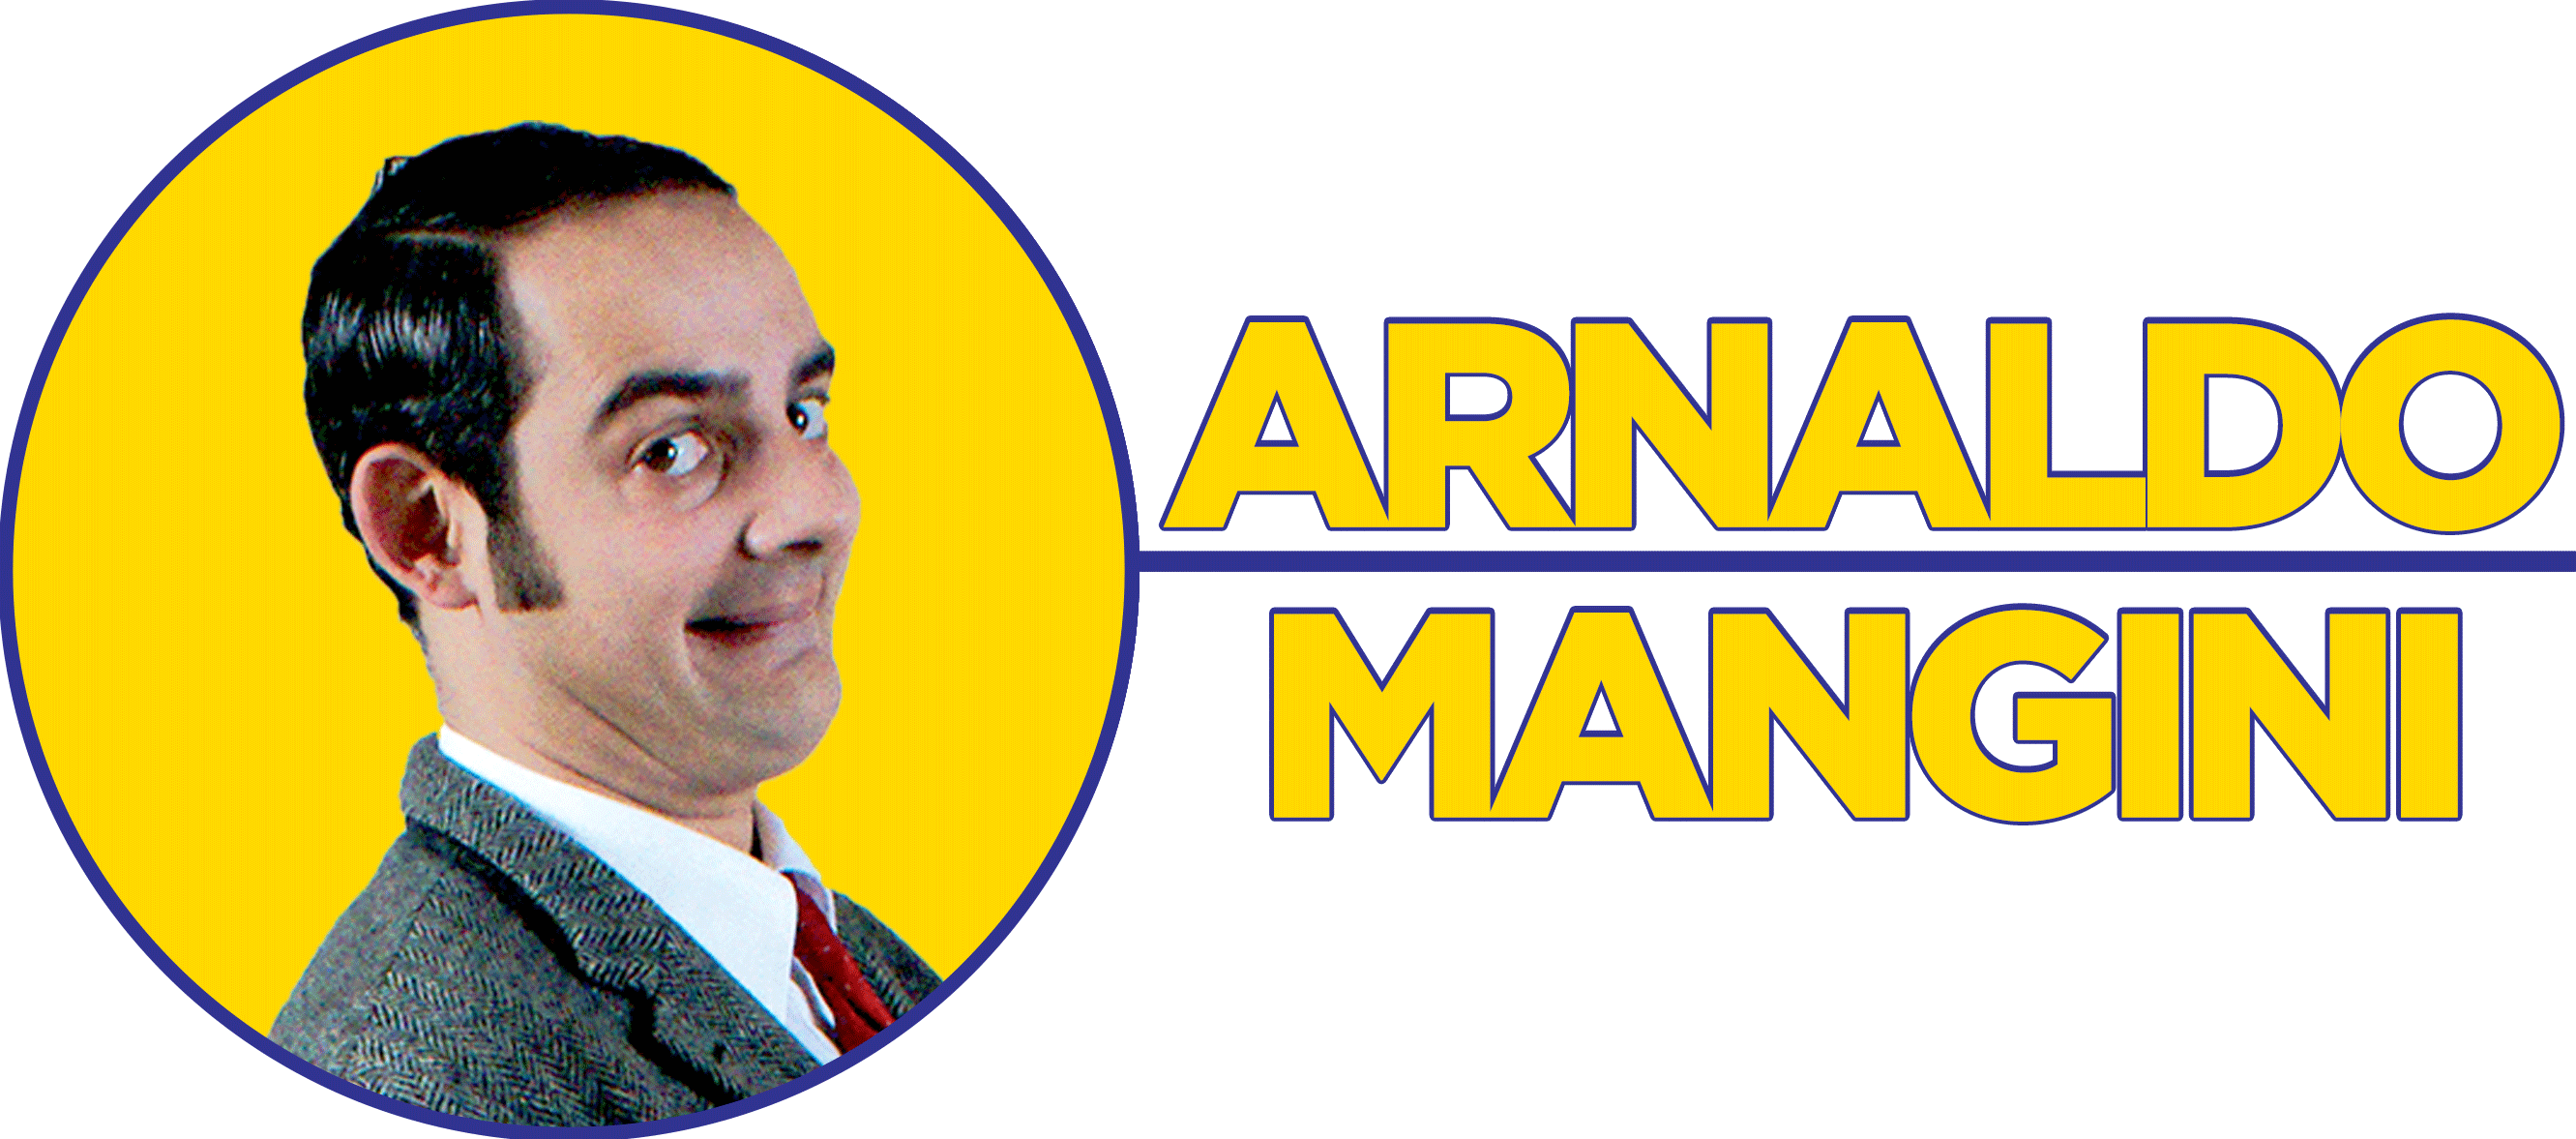 Vieni a trovarmi a Mercantia 2017 - Arnaldo Mangini Clown Actor / MrBean Lookalike